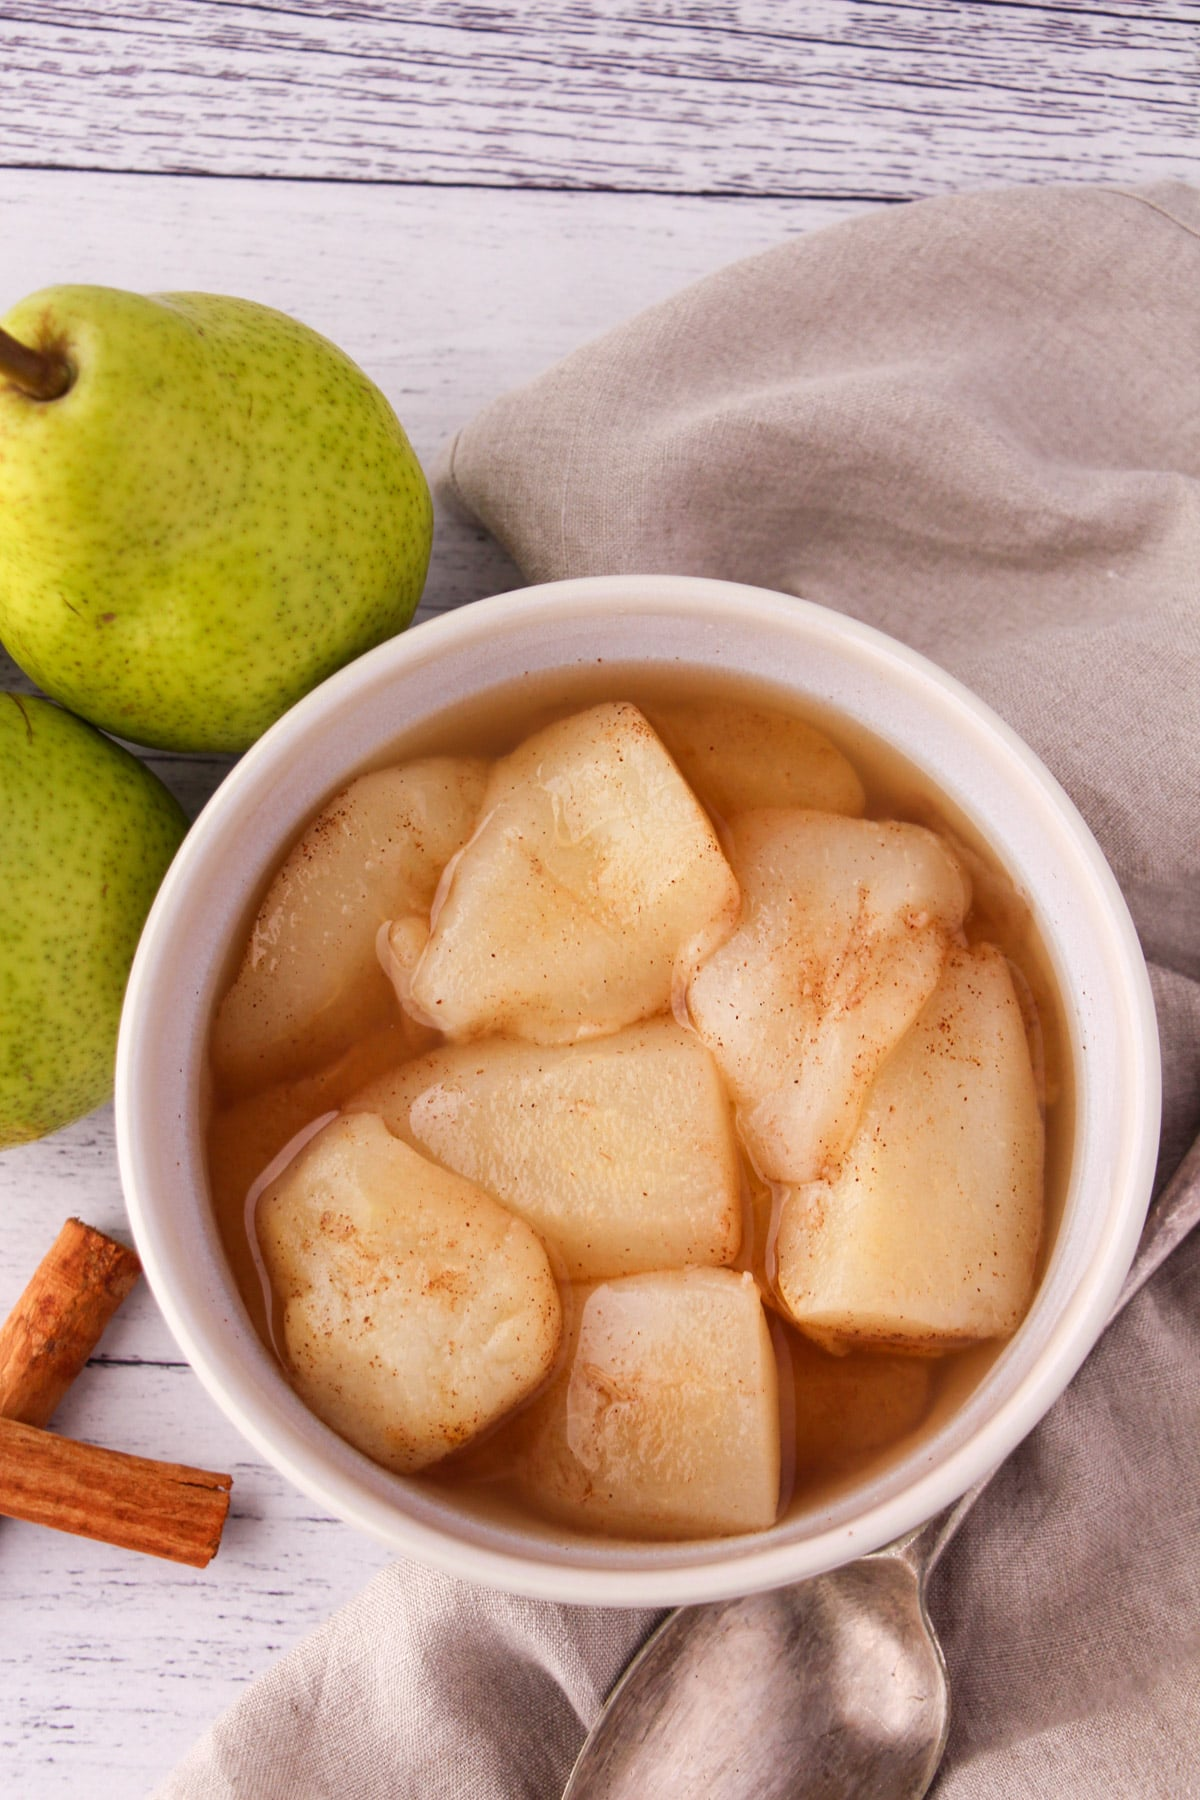 Stewed pears in a bowl, with fresh pears, cinnamon sticks and a vintage serving spoon on the side,